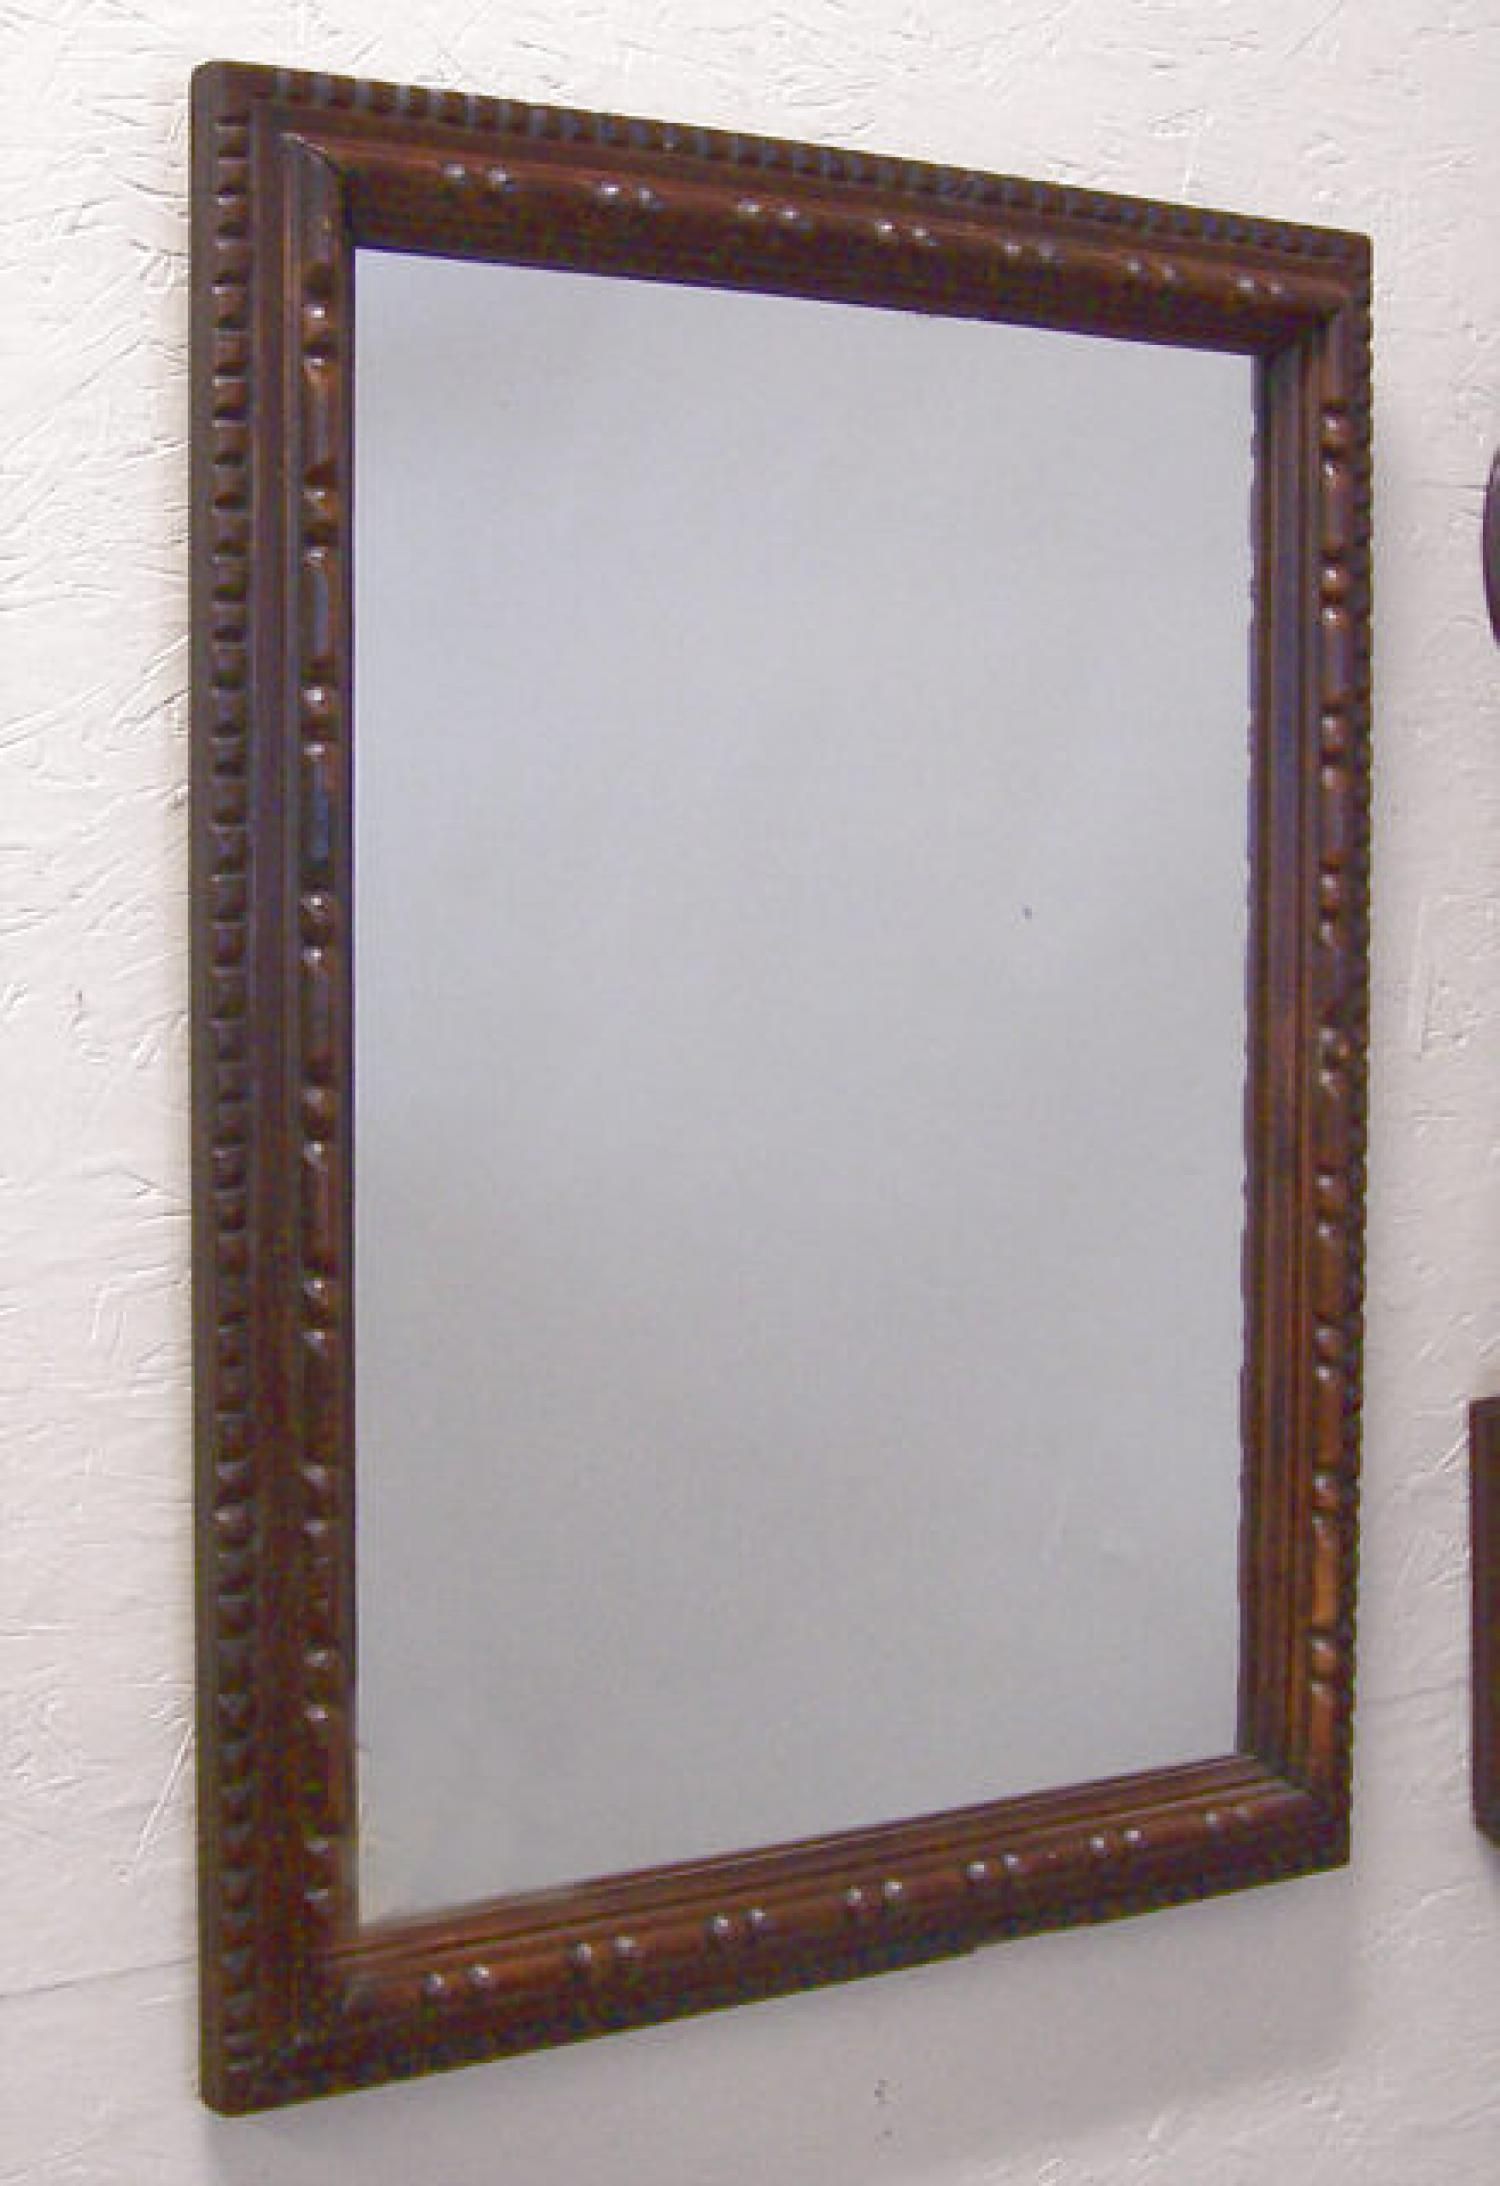 Hand carved antique walnut hanging wall mirror c1880